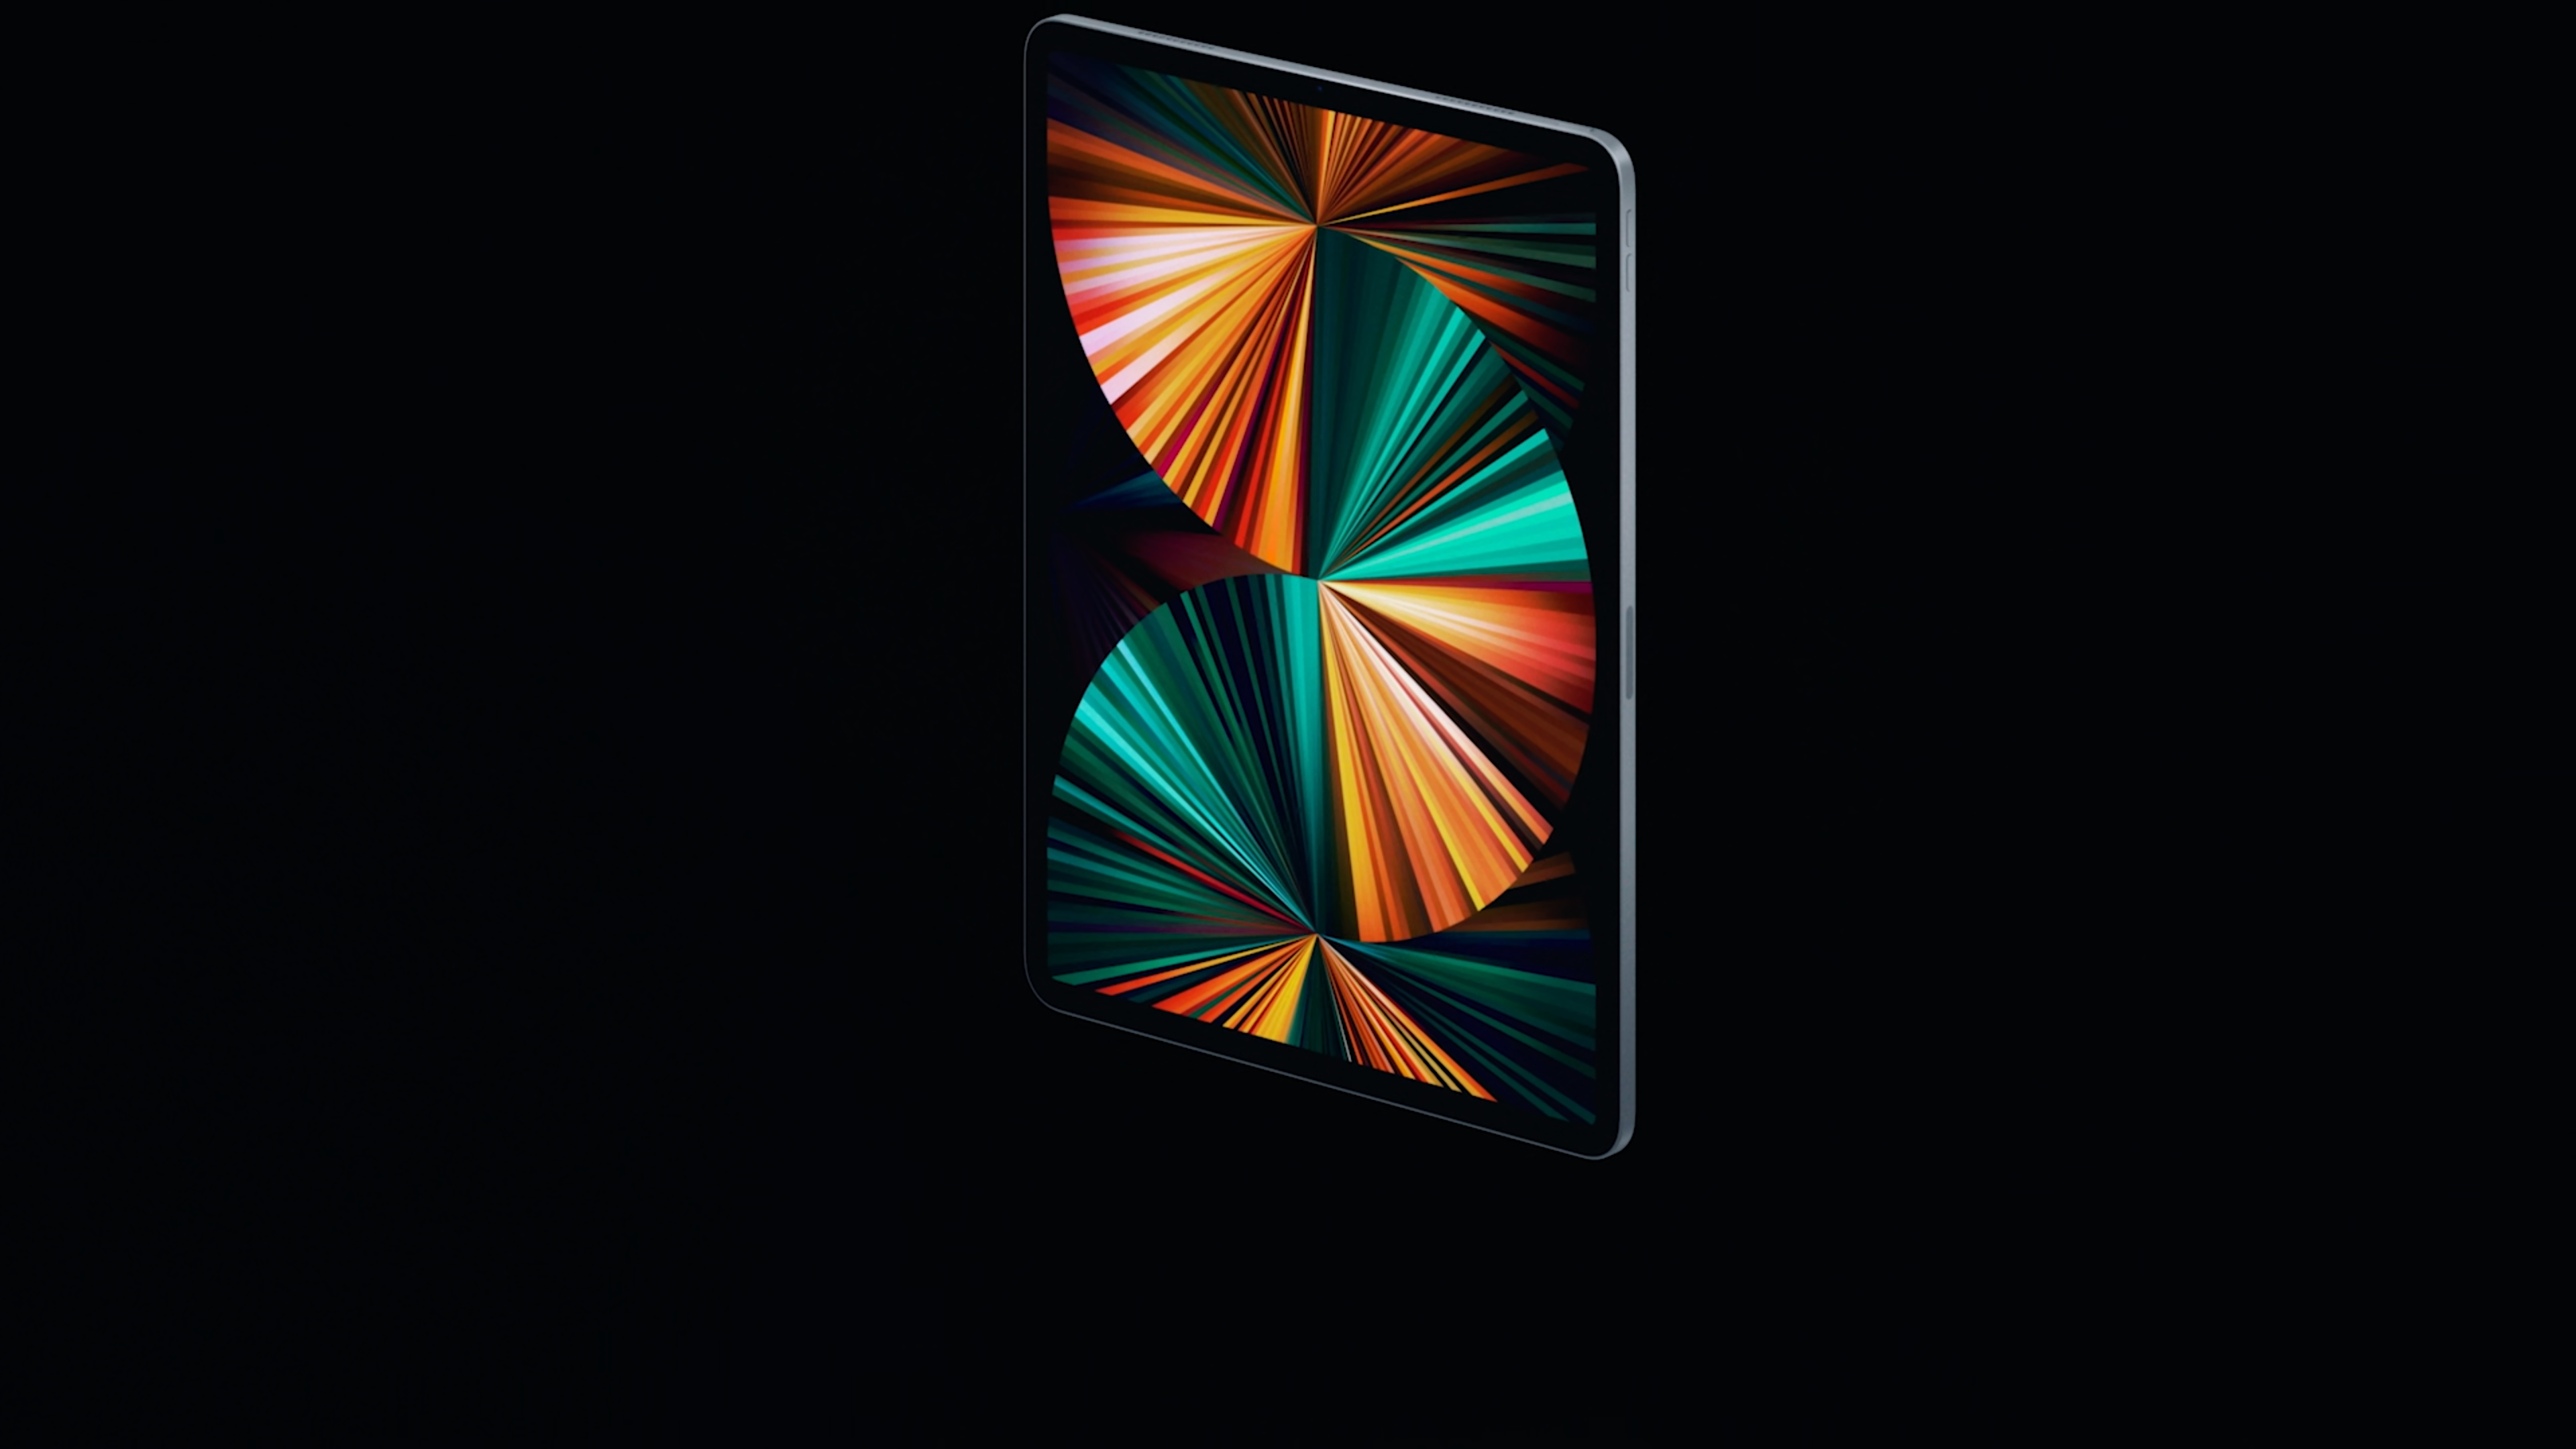 ipad-pro-2021-black-background.png